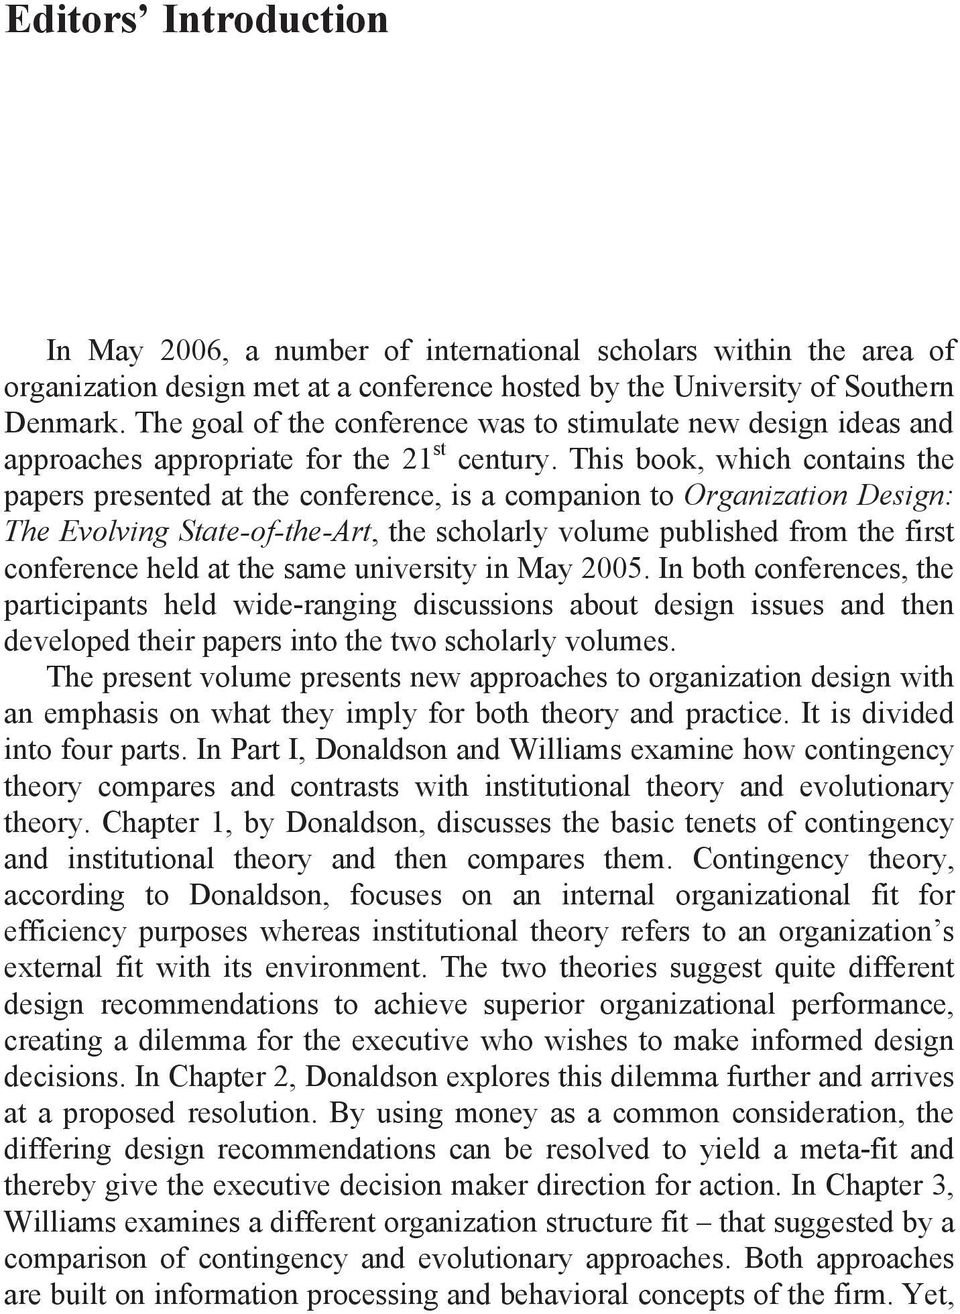 This book, which contains the papers presented at the conference, is a companion to Organization Design: The Evolving State-of-the-Art, the scholarly volume published from the first conference held